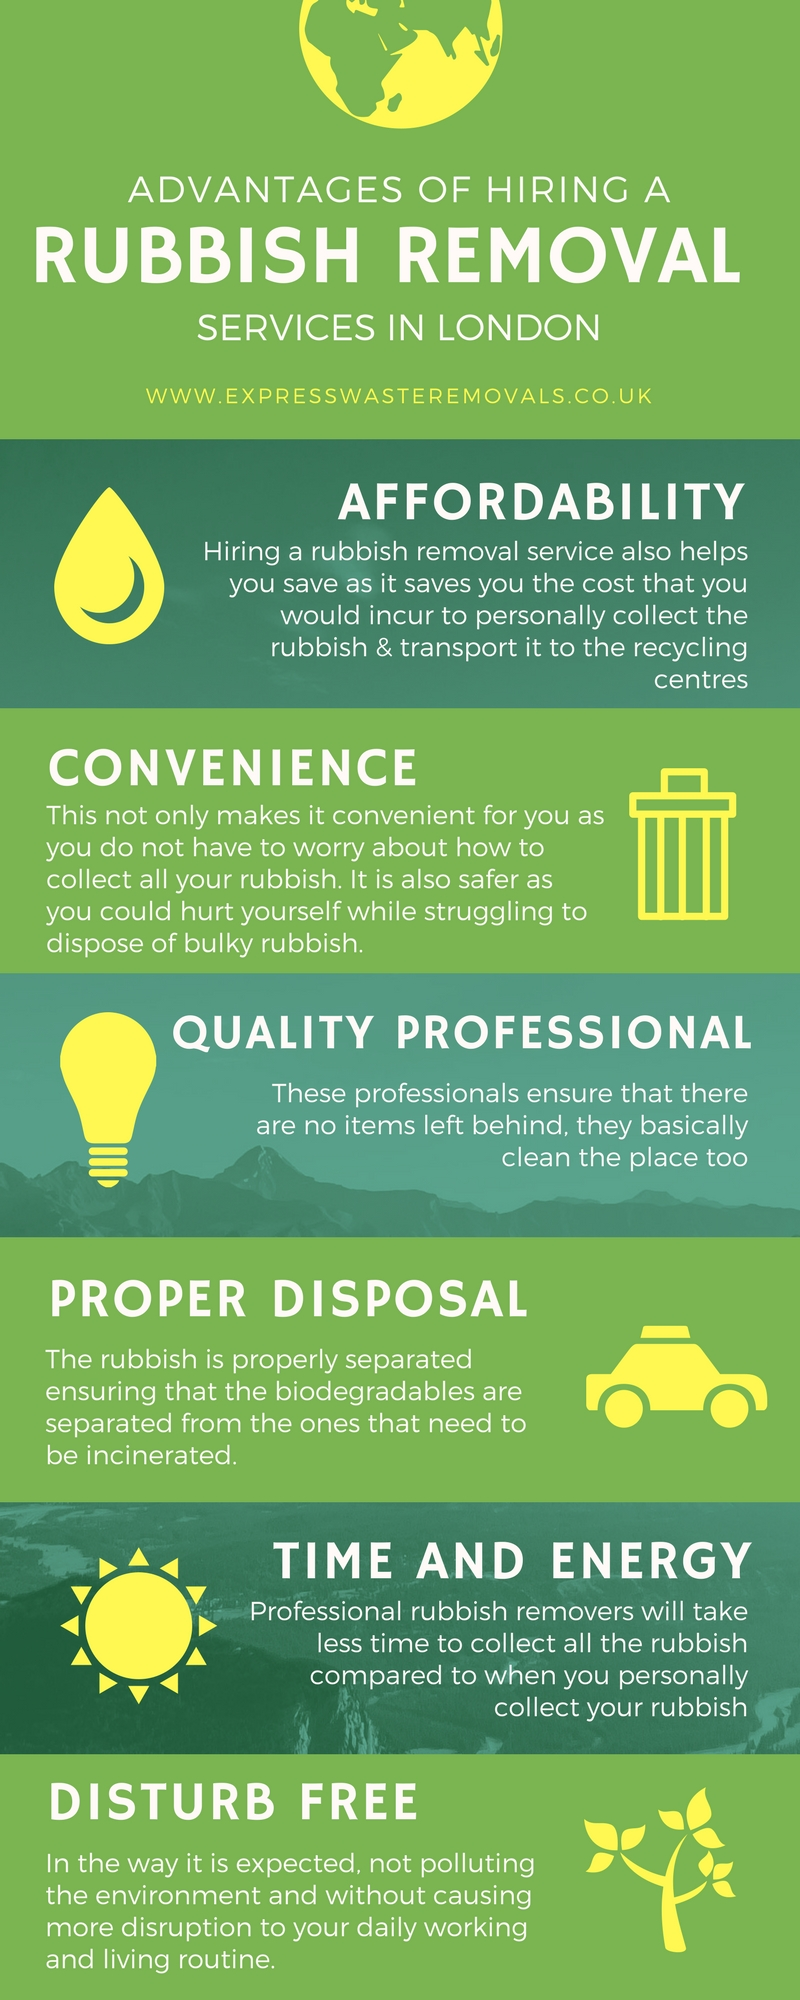 Express Waste Removals Infographic